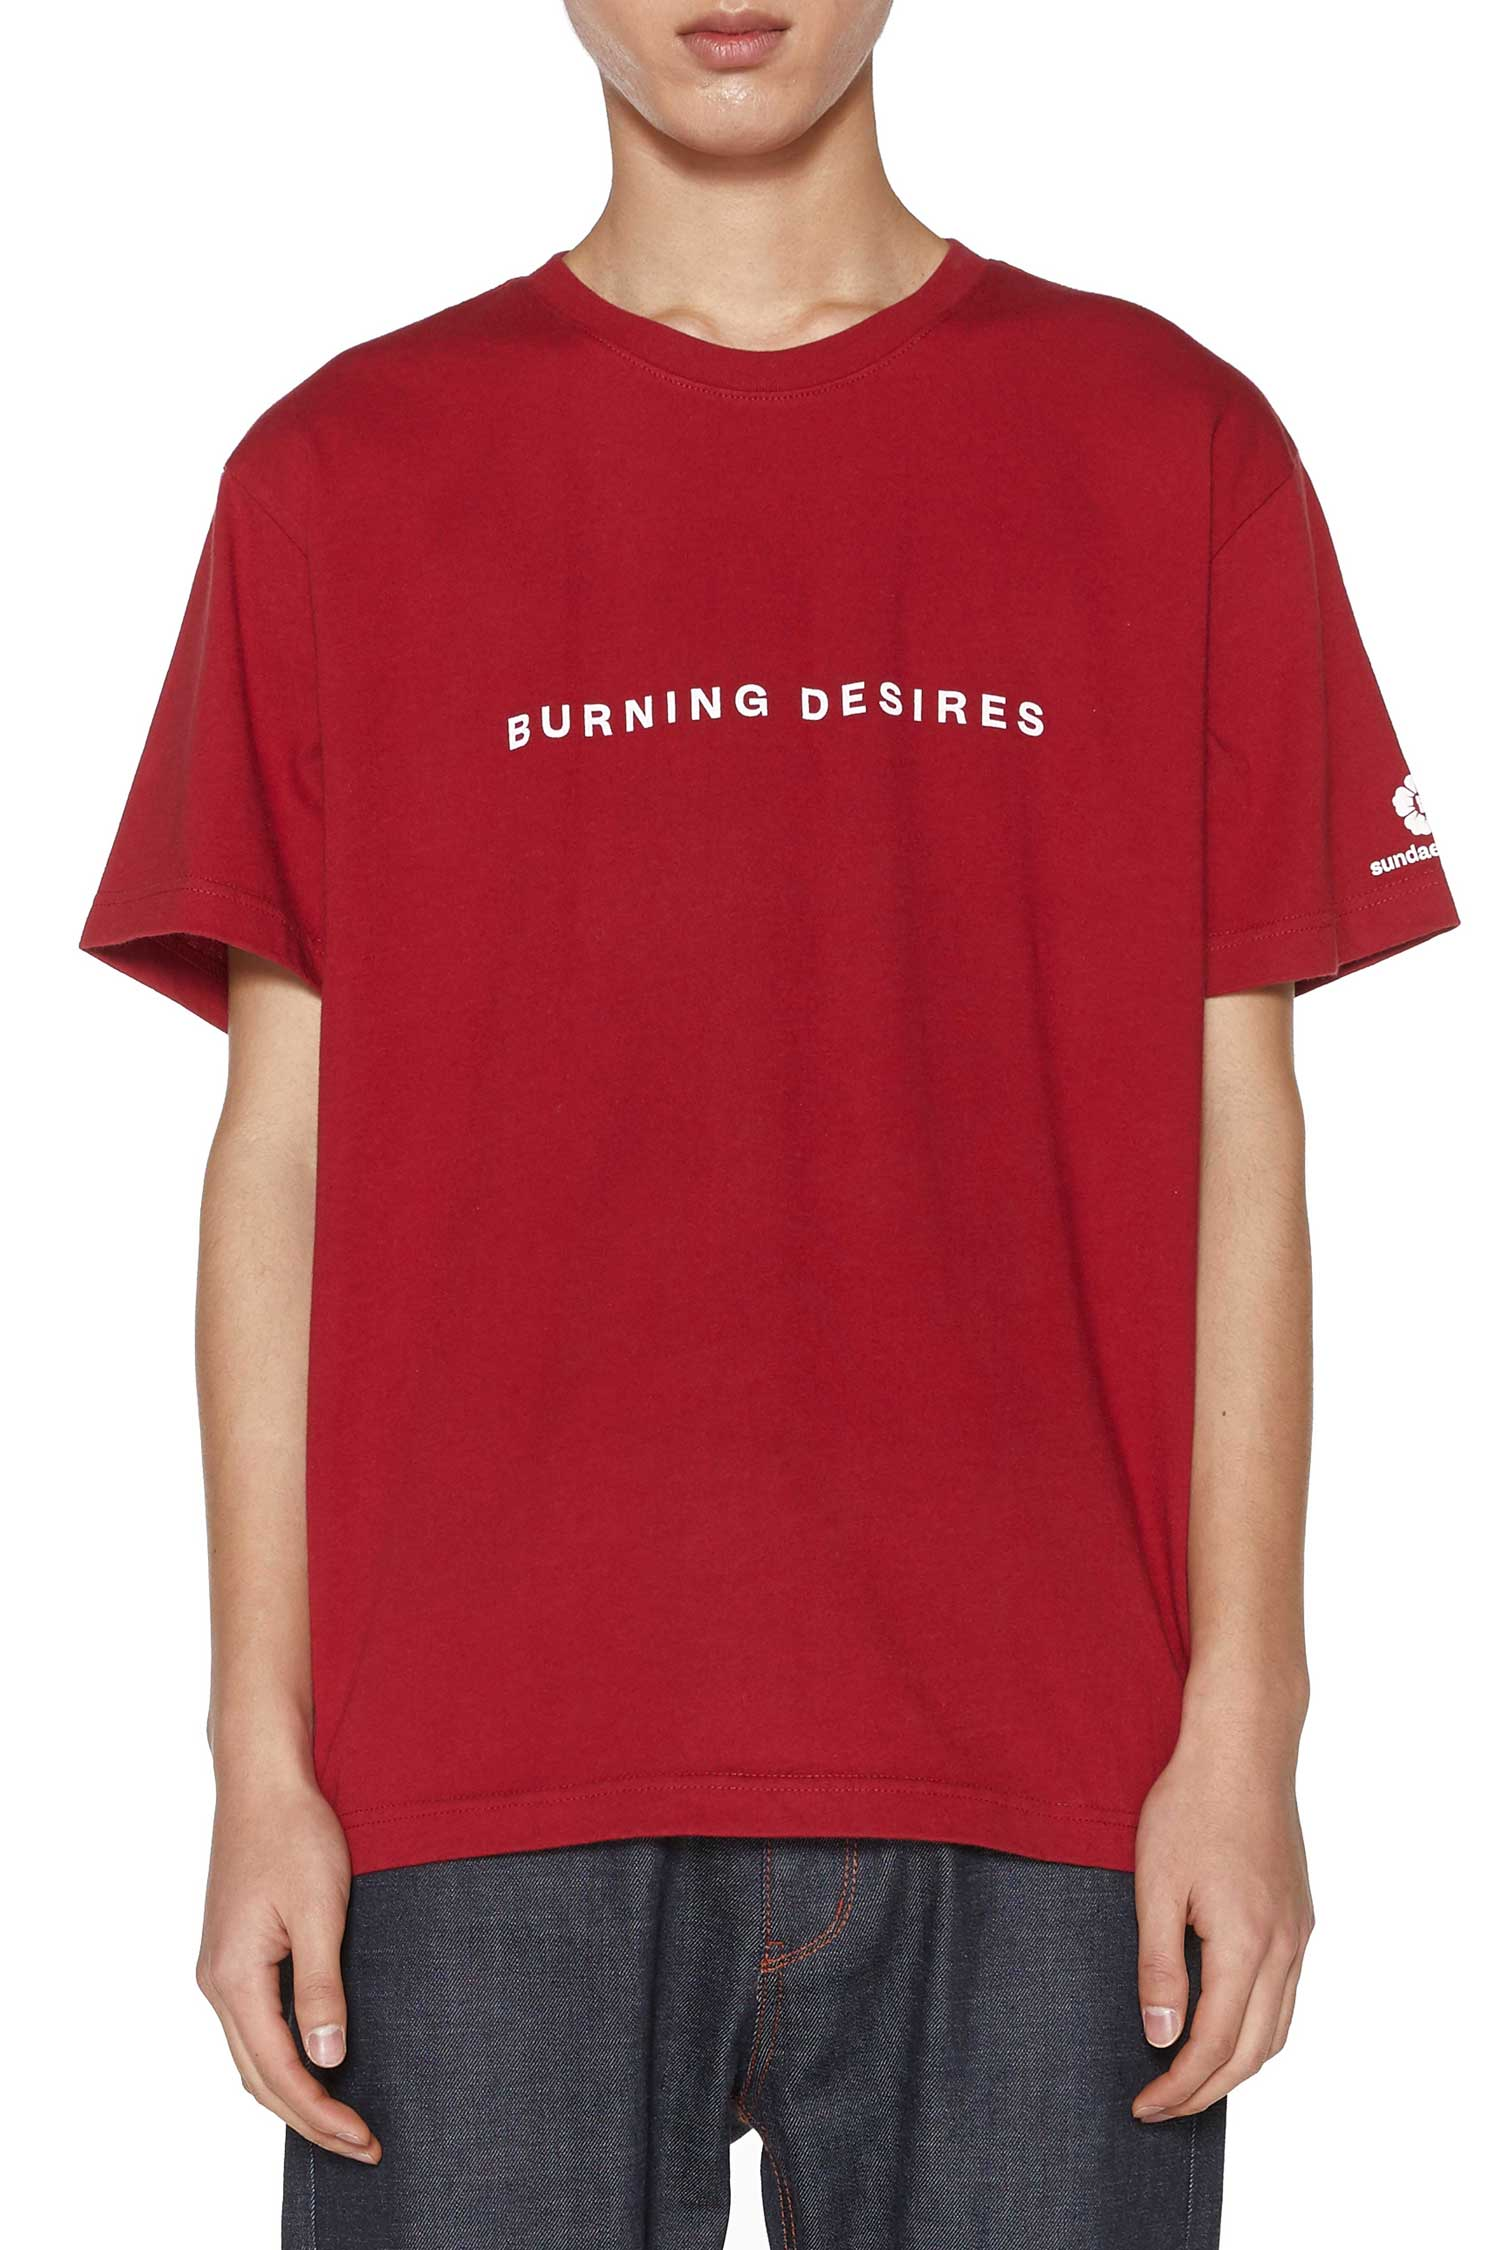 Burning Desires T-shirt / Red